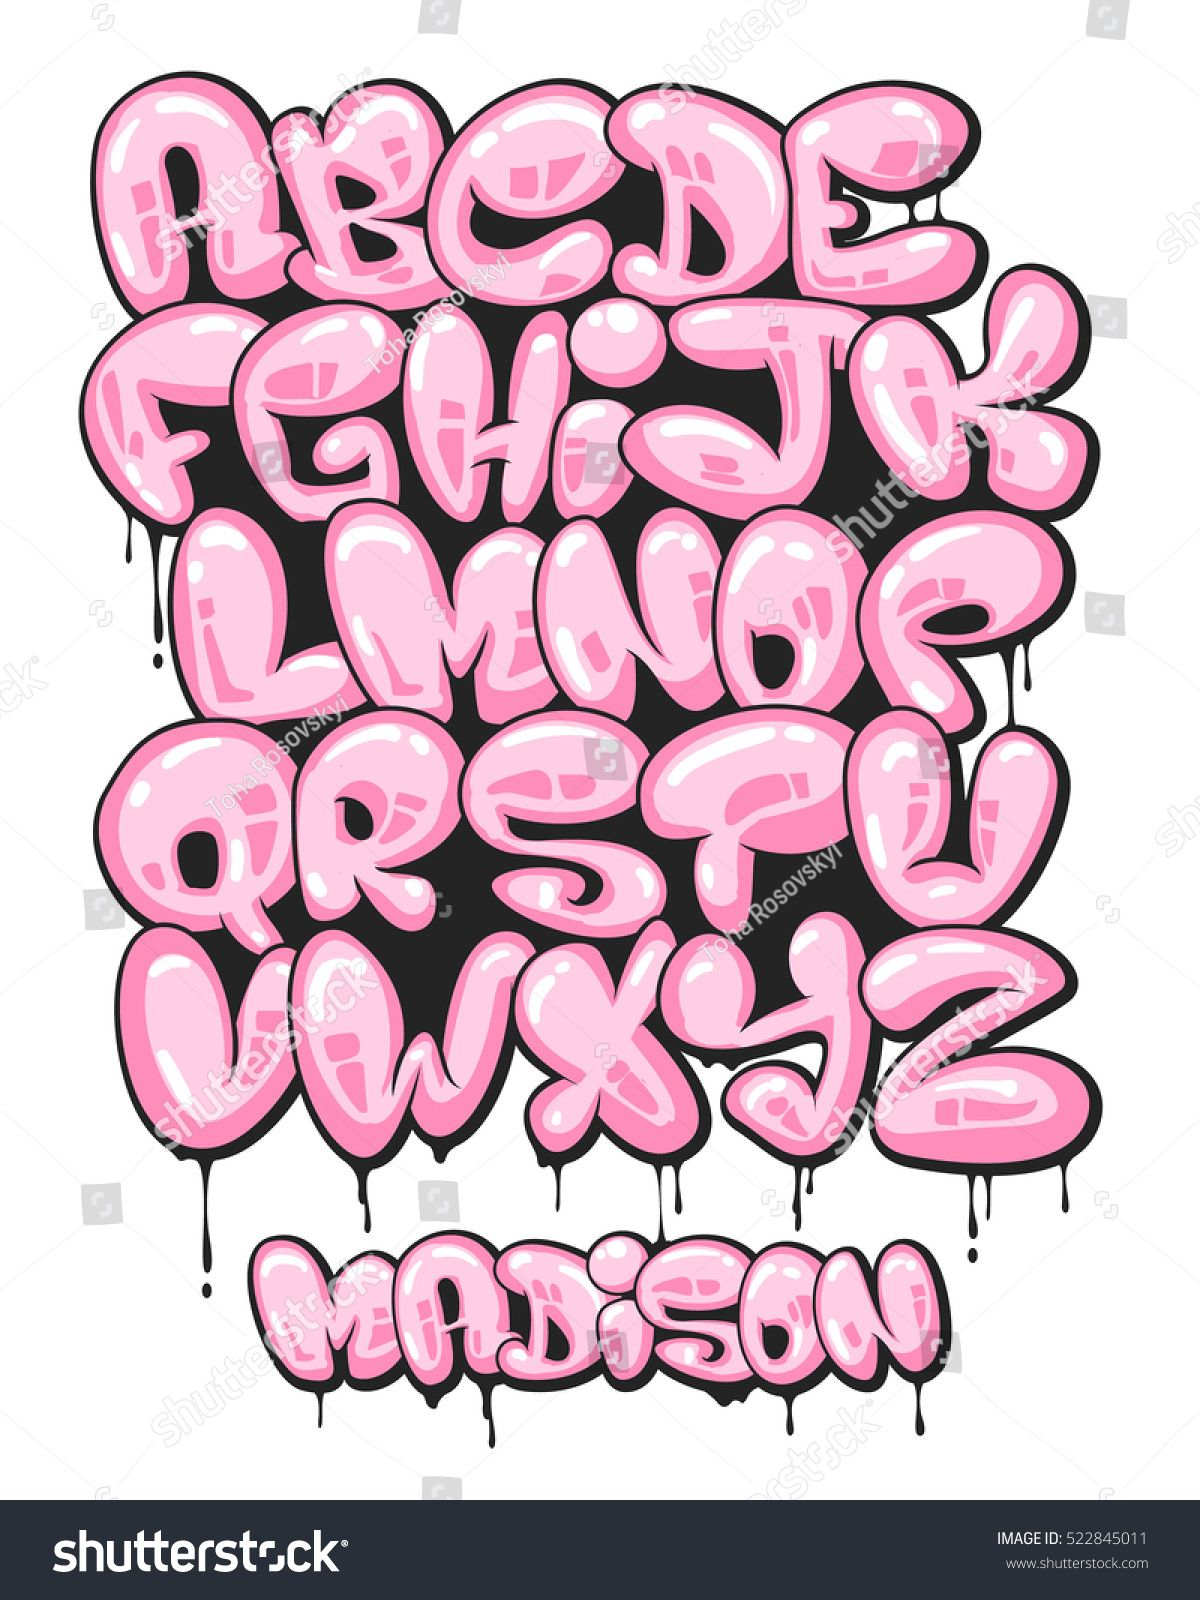 Graffiti bubble shaped alphabet set. | one step | Pinterest ...